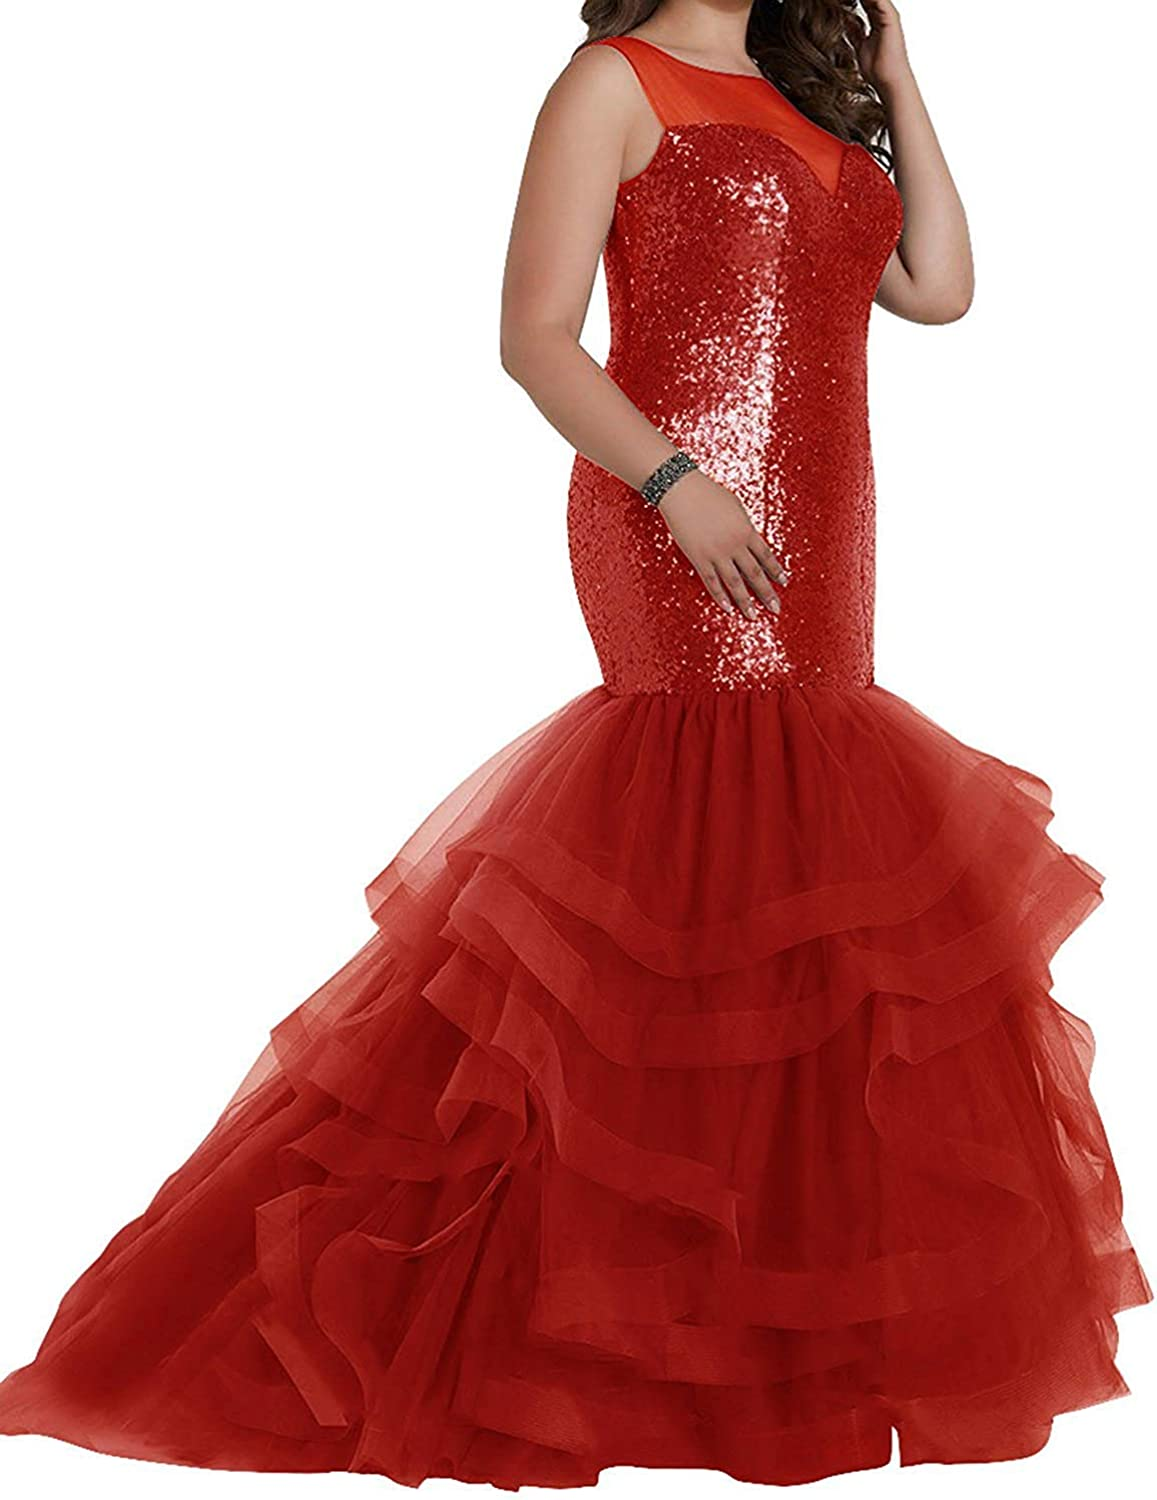 Sound of blossoming Long Mermaid Sequins Plus Size Prom Dresses Tulle Maxi Evening Formal Ball Gowns SOB307